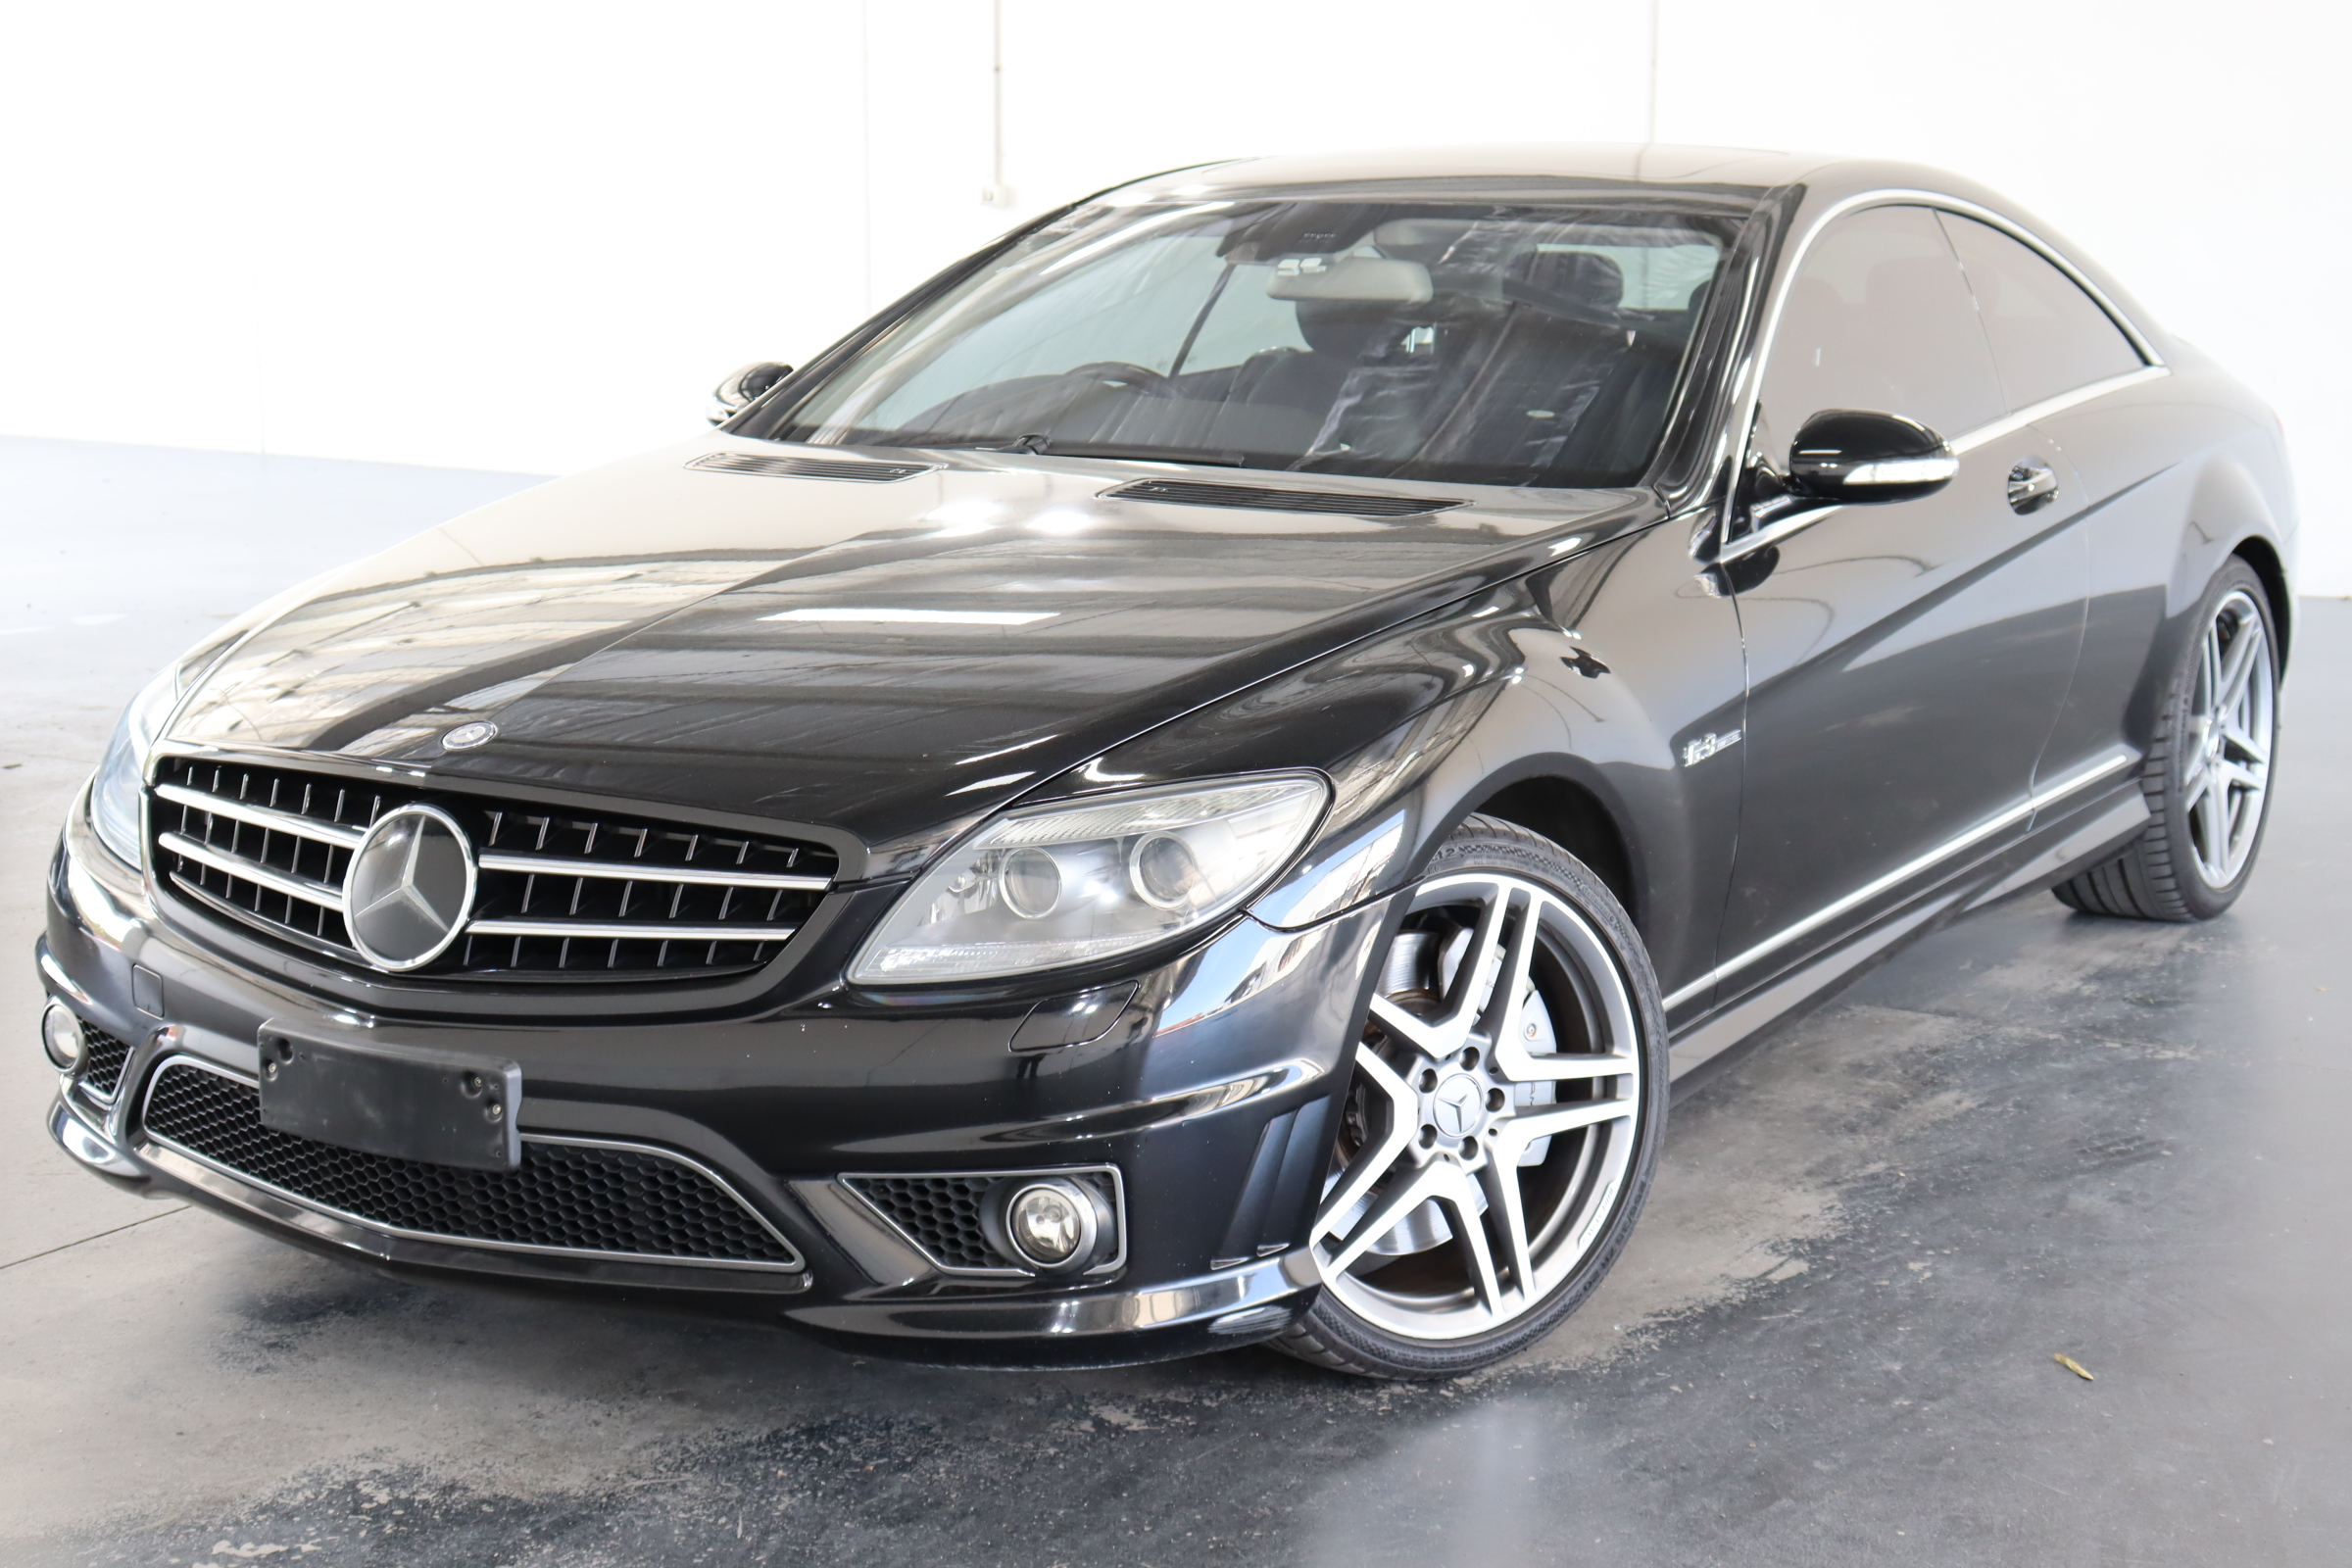 2007 Mercedes Benz CL 63 AMG C216 Automatic Coupe